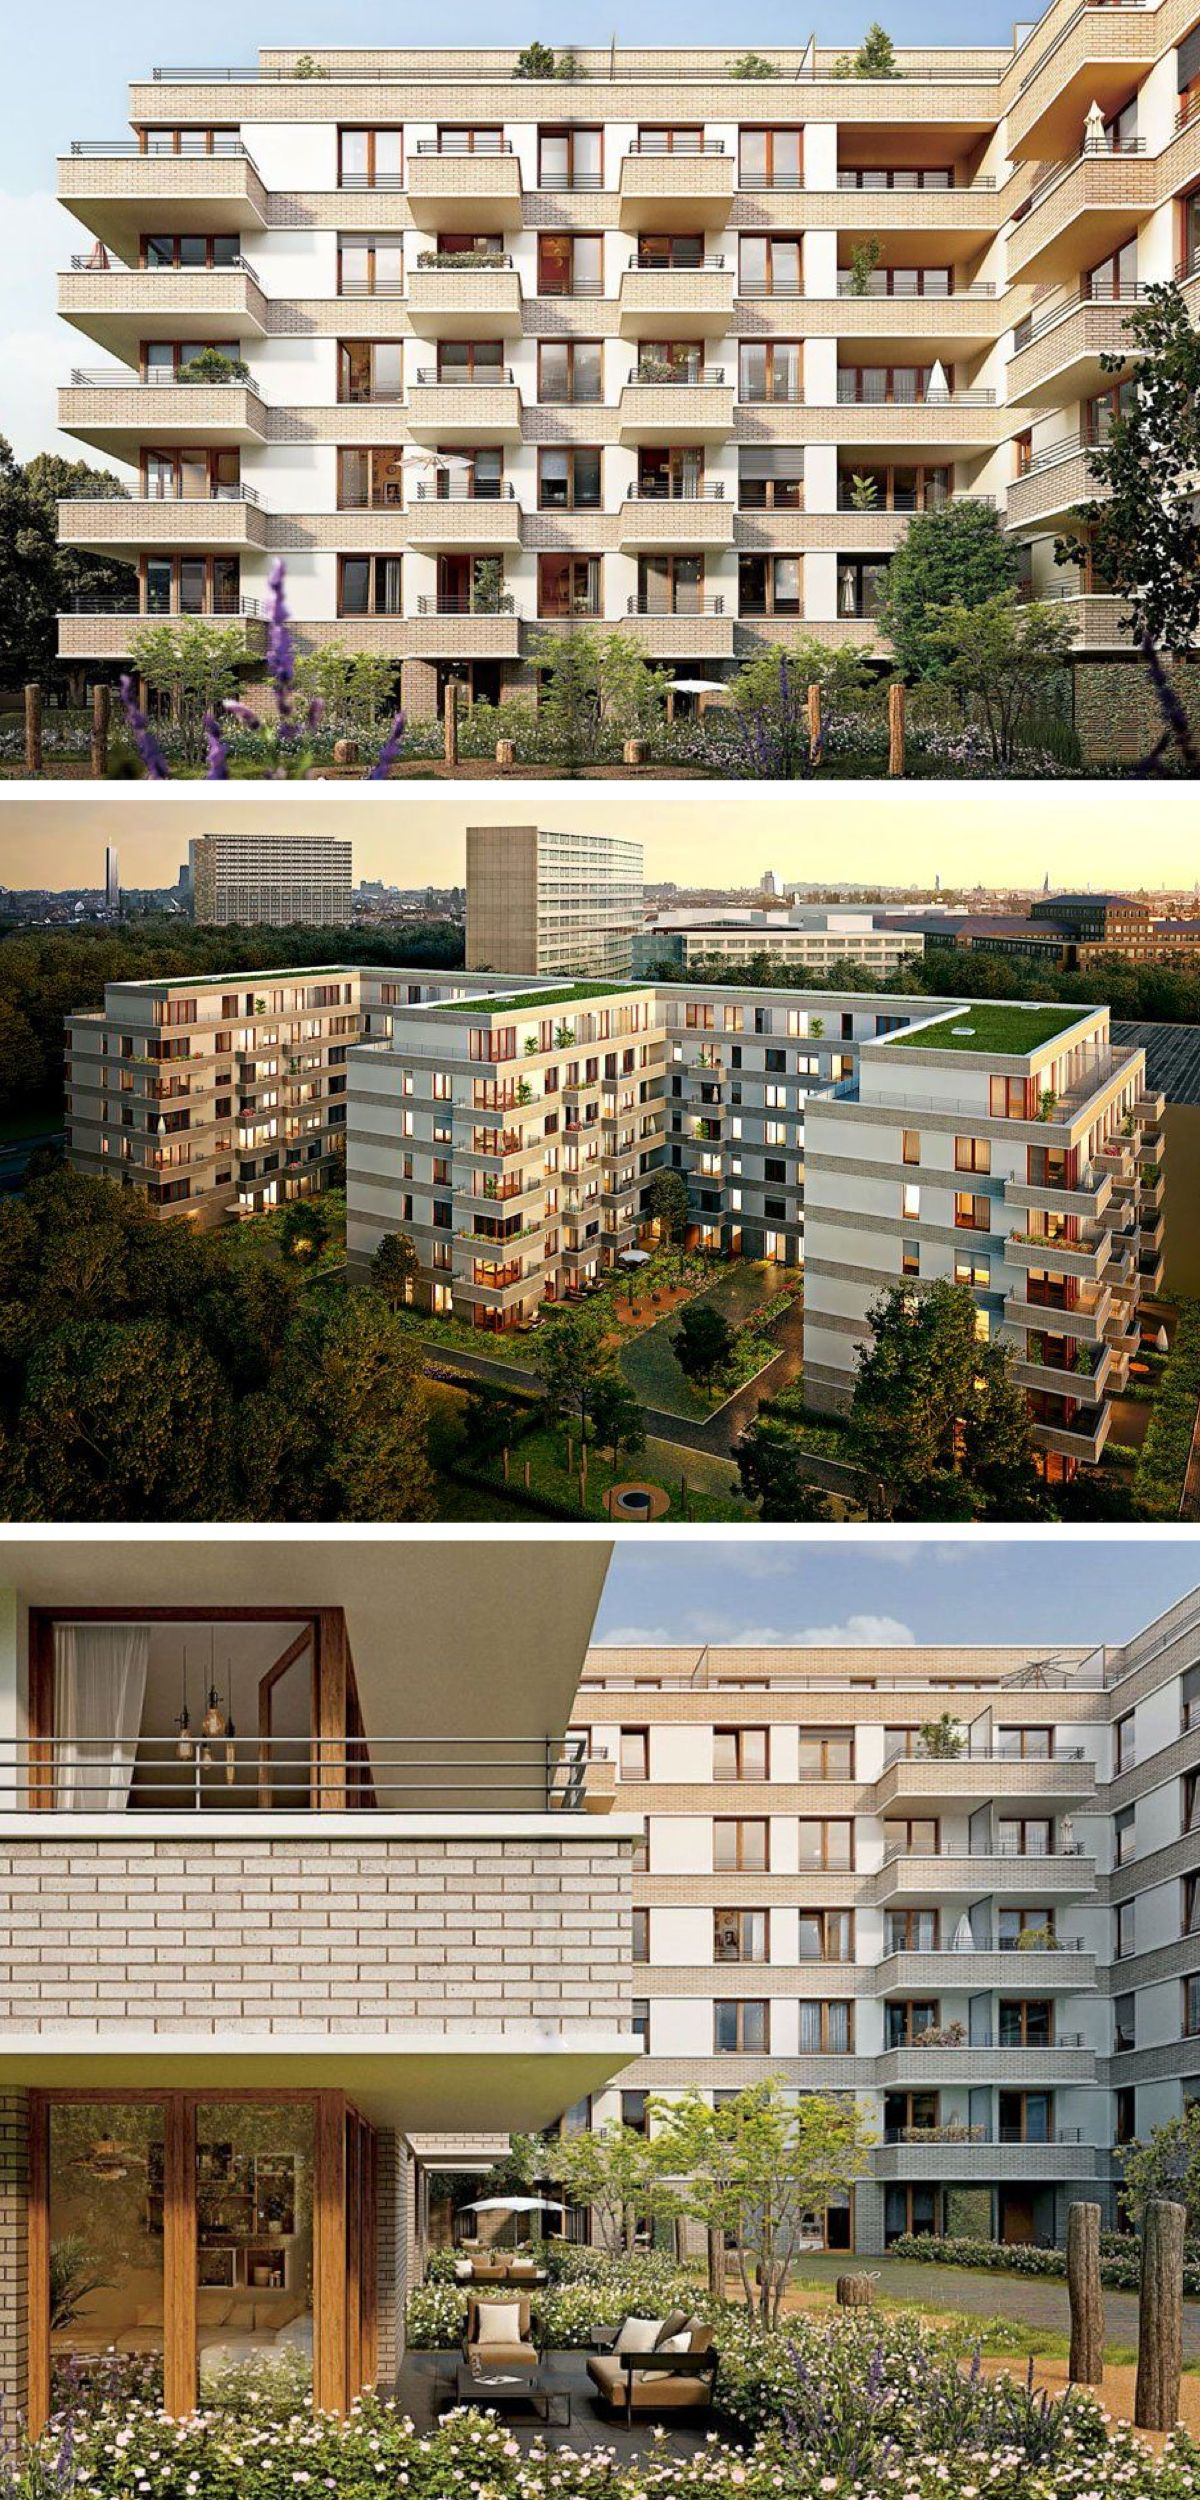 Immo Imobilien Mulberry Yards Berlin Wilmersdorf One Immo Neubau